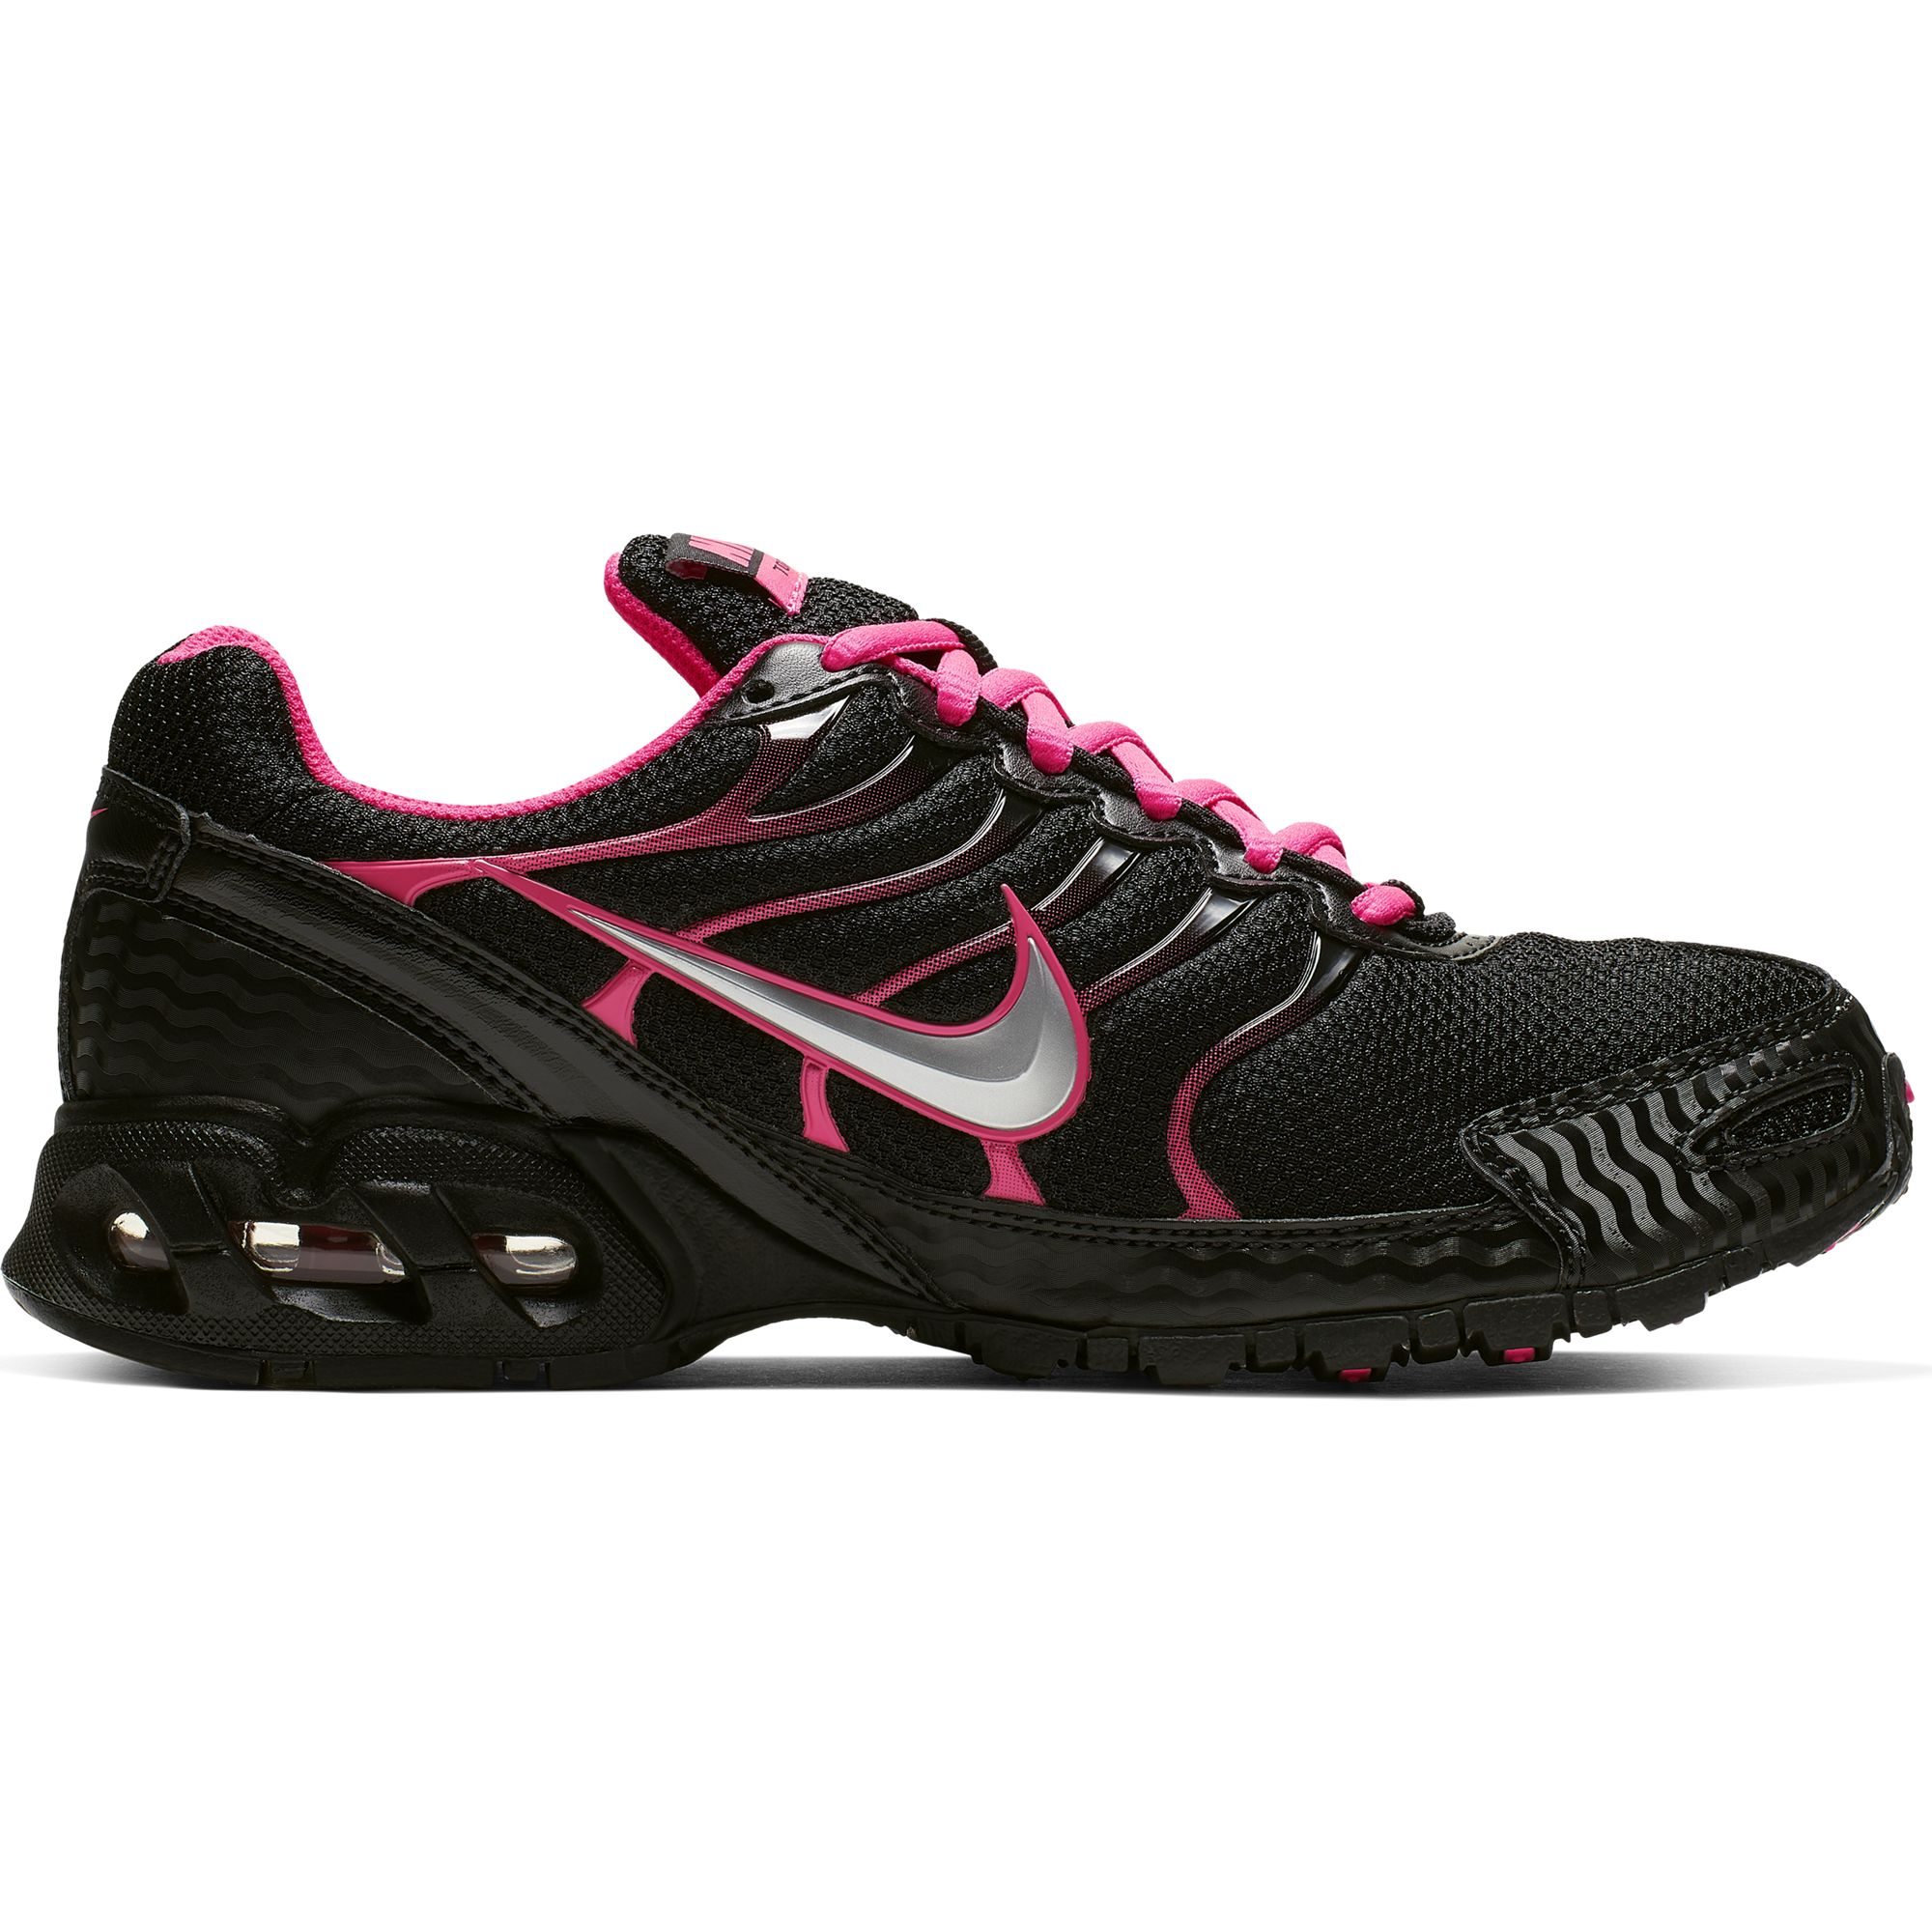 Women's Air Max Torch 4 Running Shoes, , large